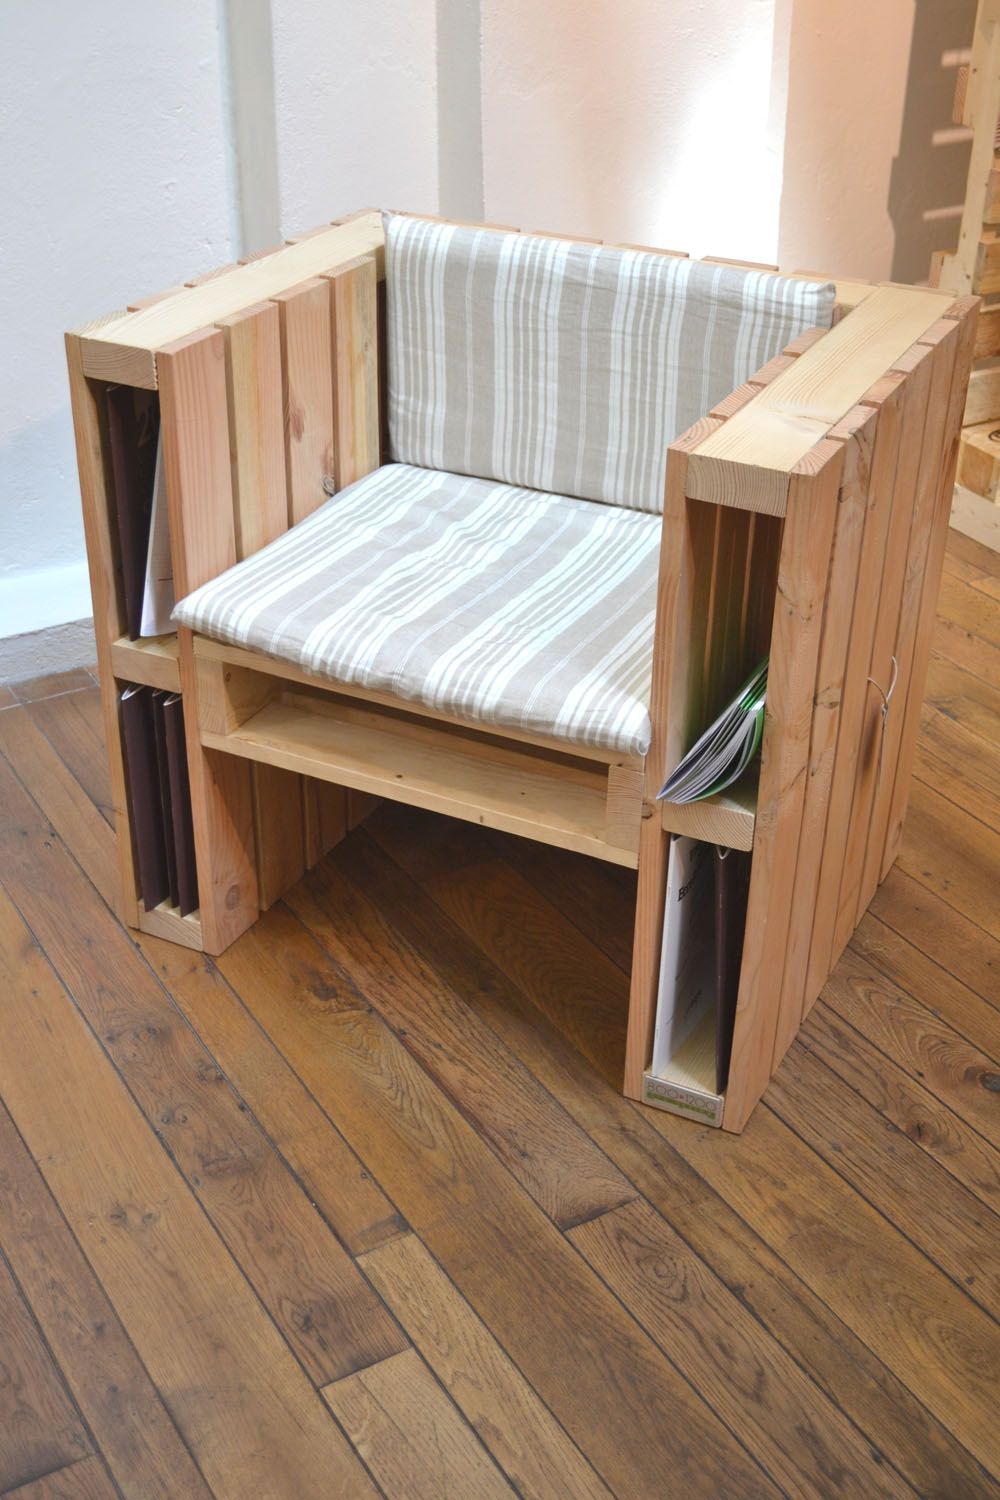 Diy pallet sofa with table 99 pallets - Diy Top 10 Recycled Pallet Ideas And Projects